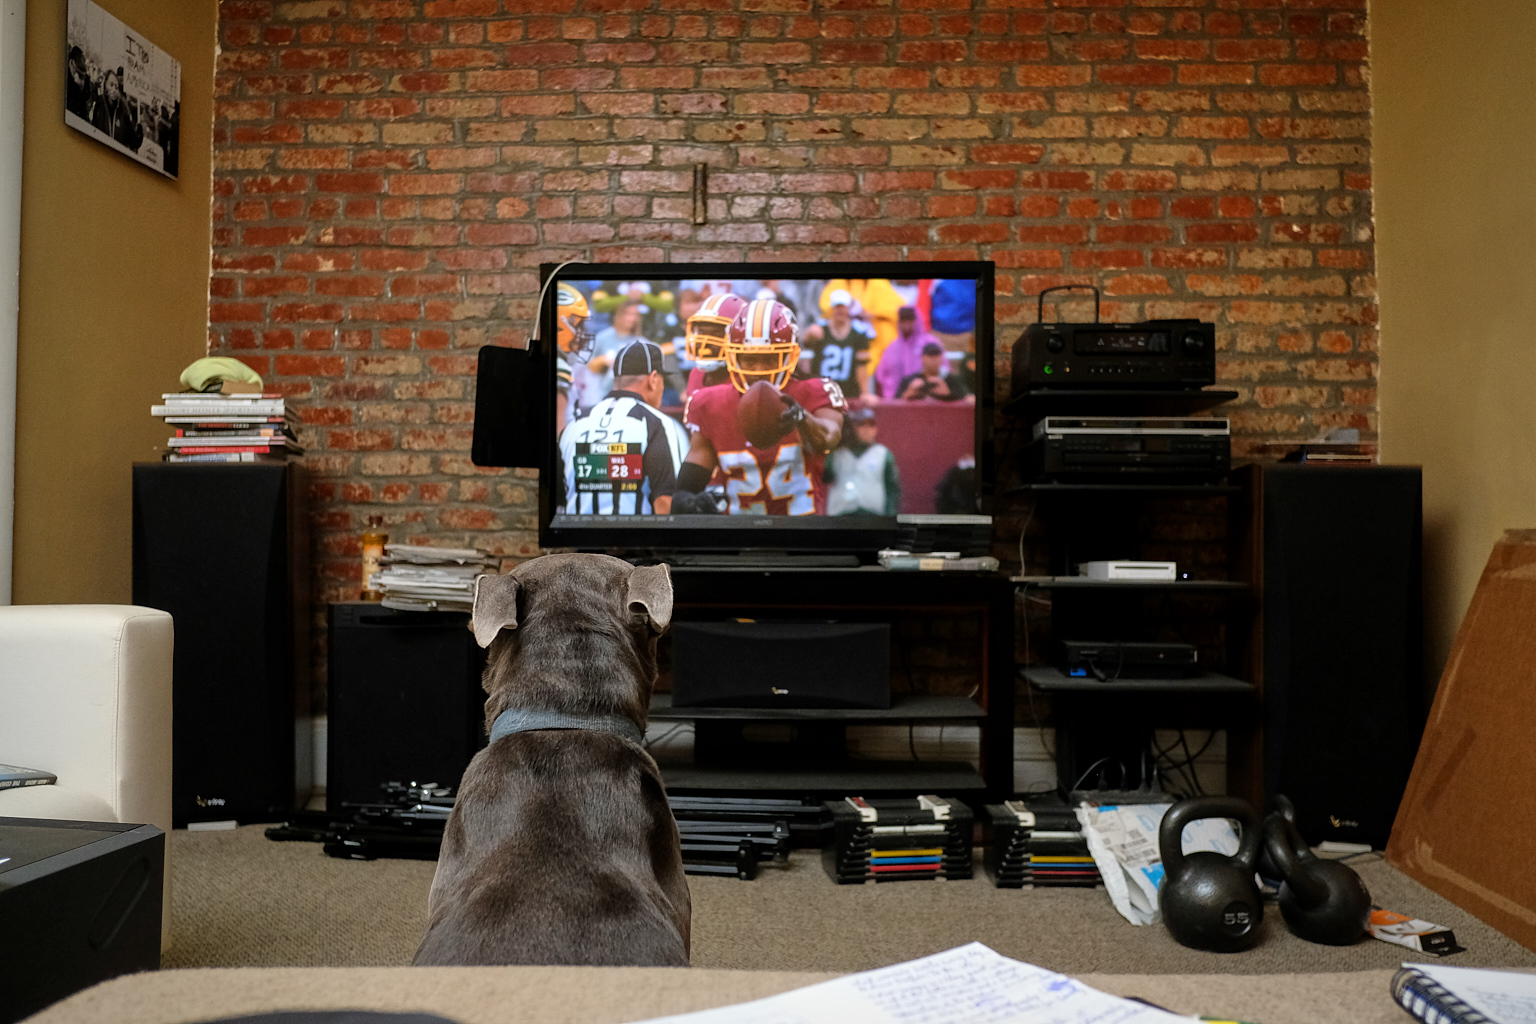 Russell_Watching_TV_2018-09-23-027.jpg